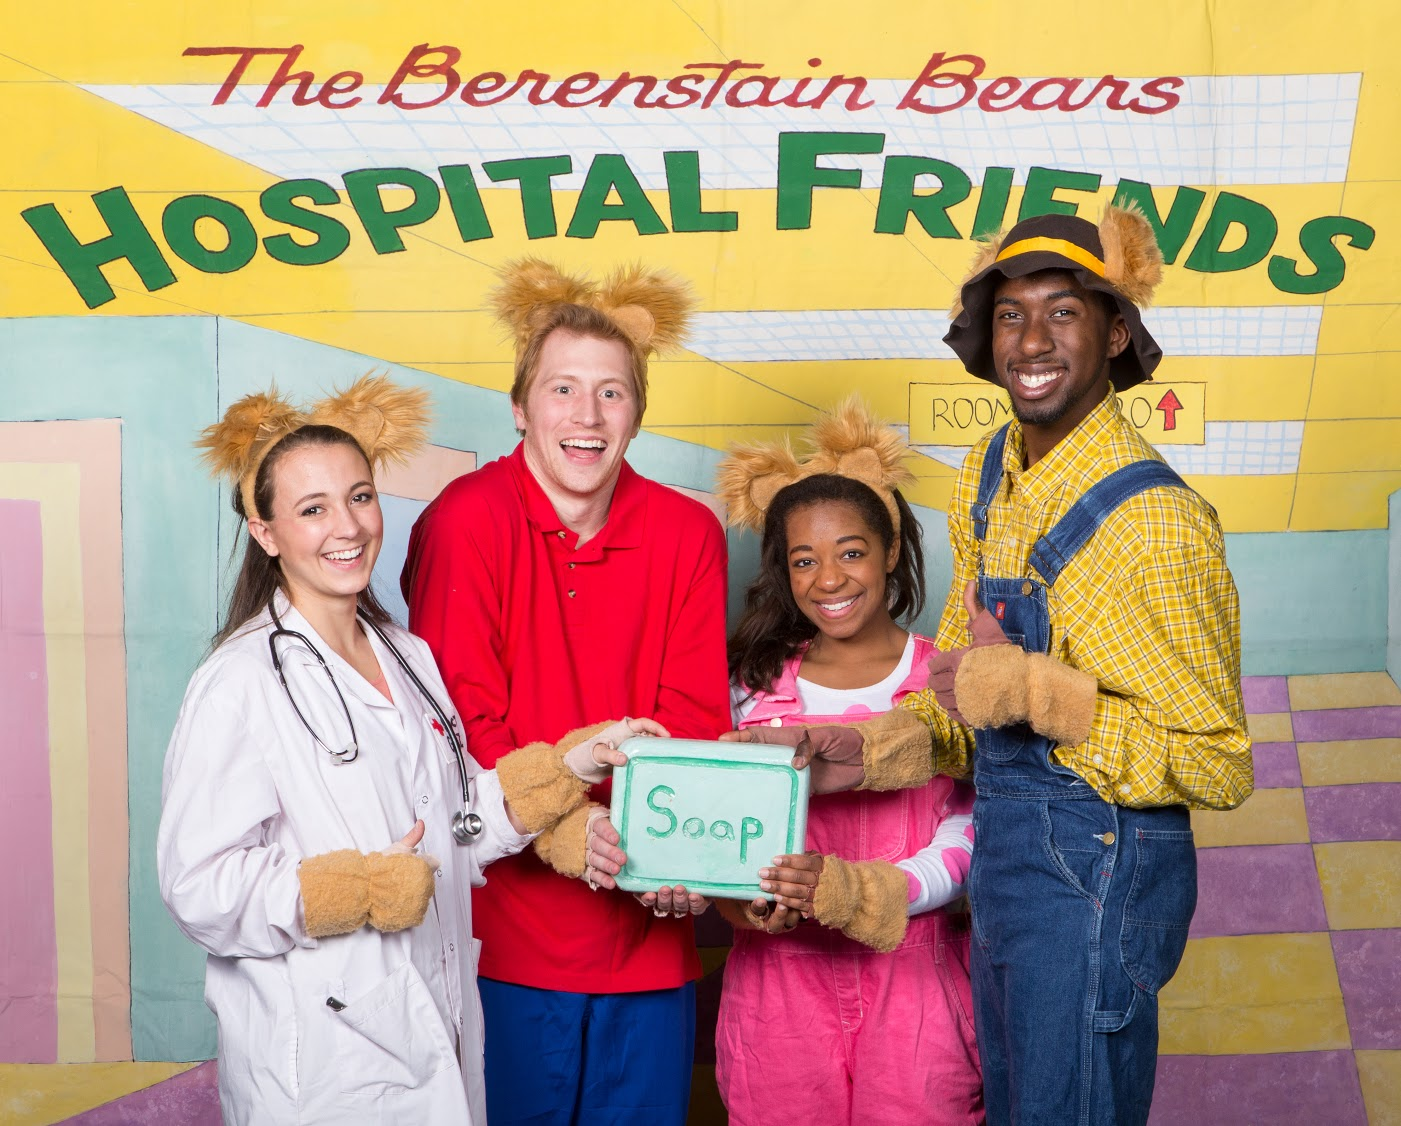 The Berenstain Bears: Hospital Frien